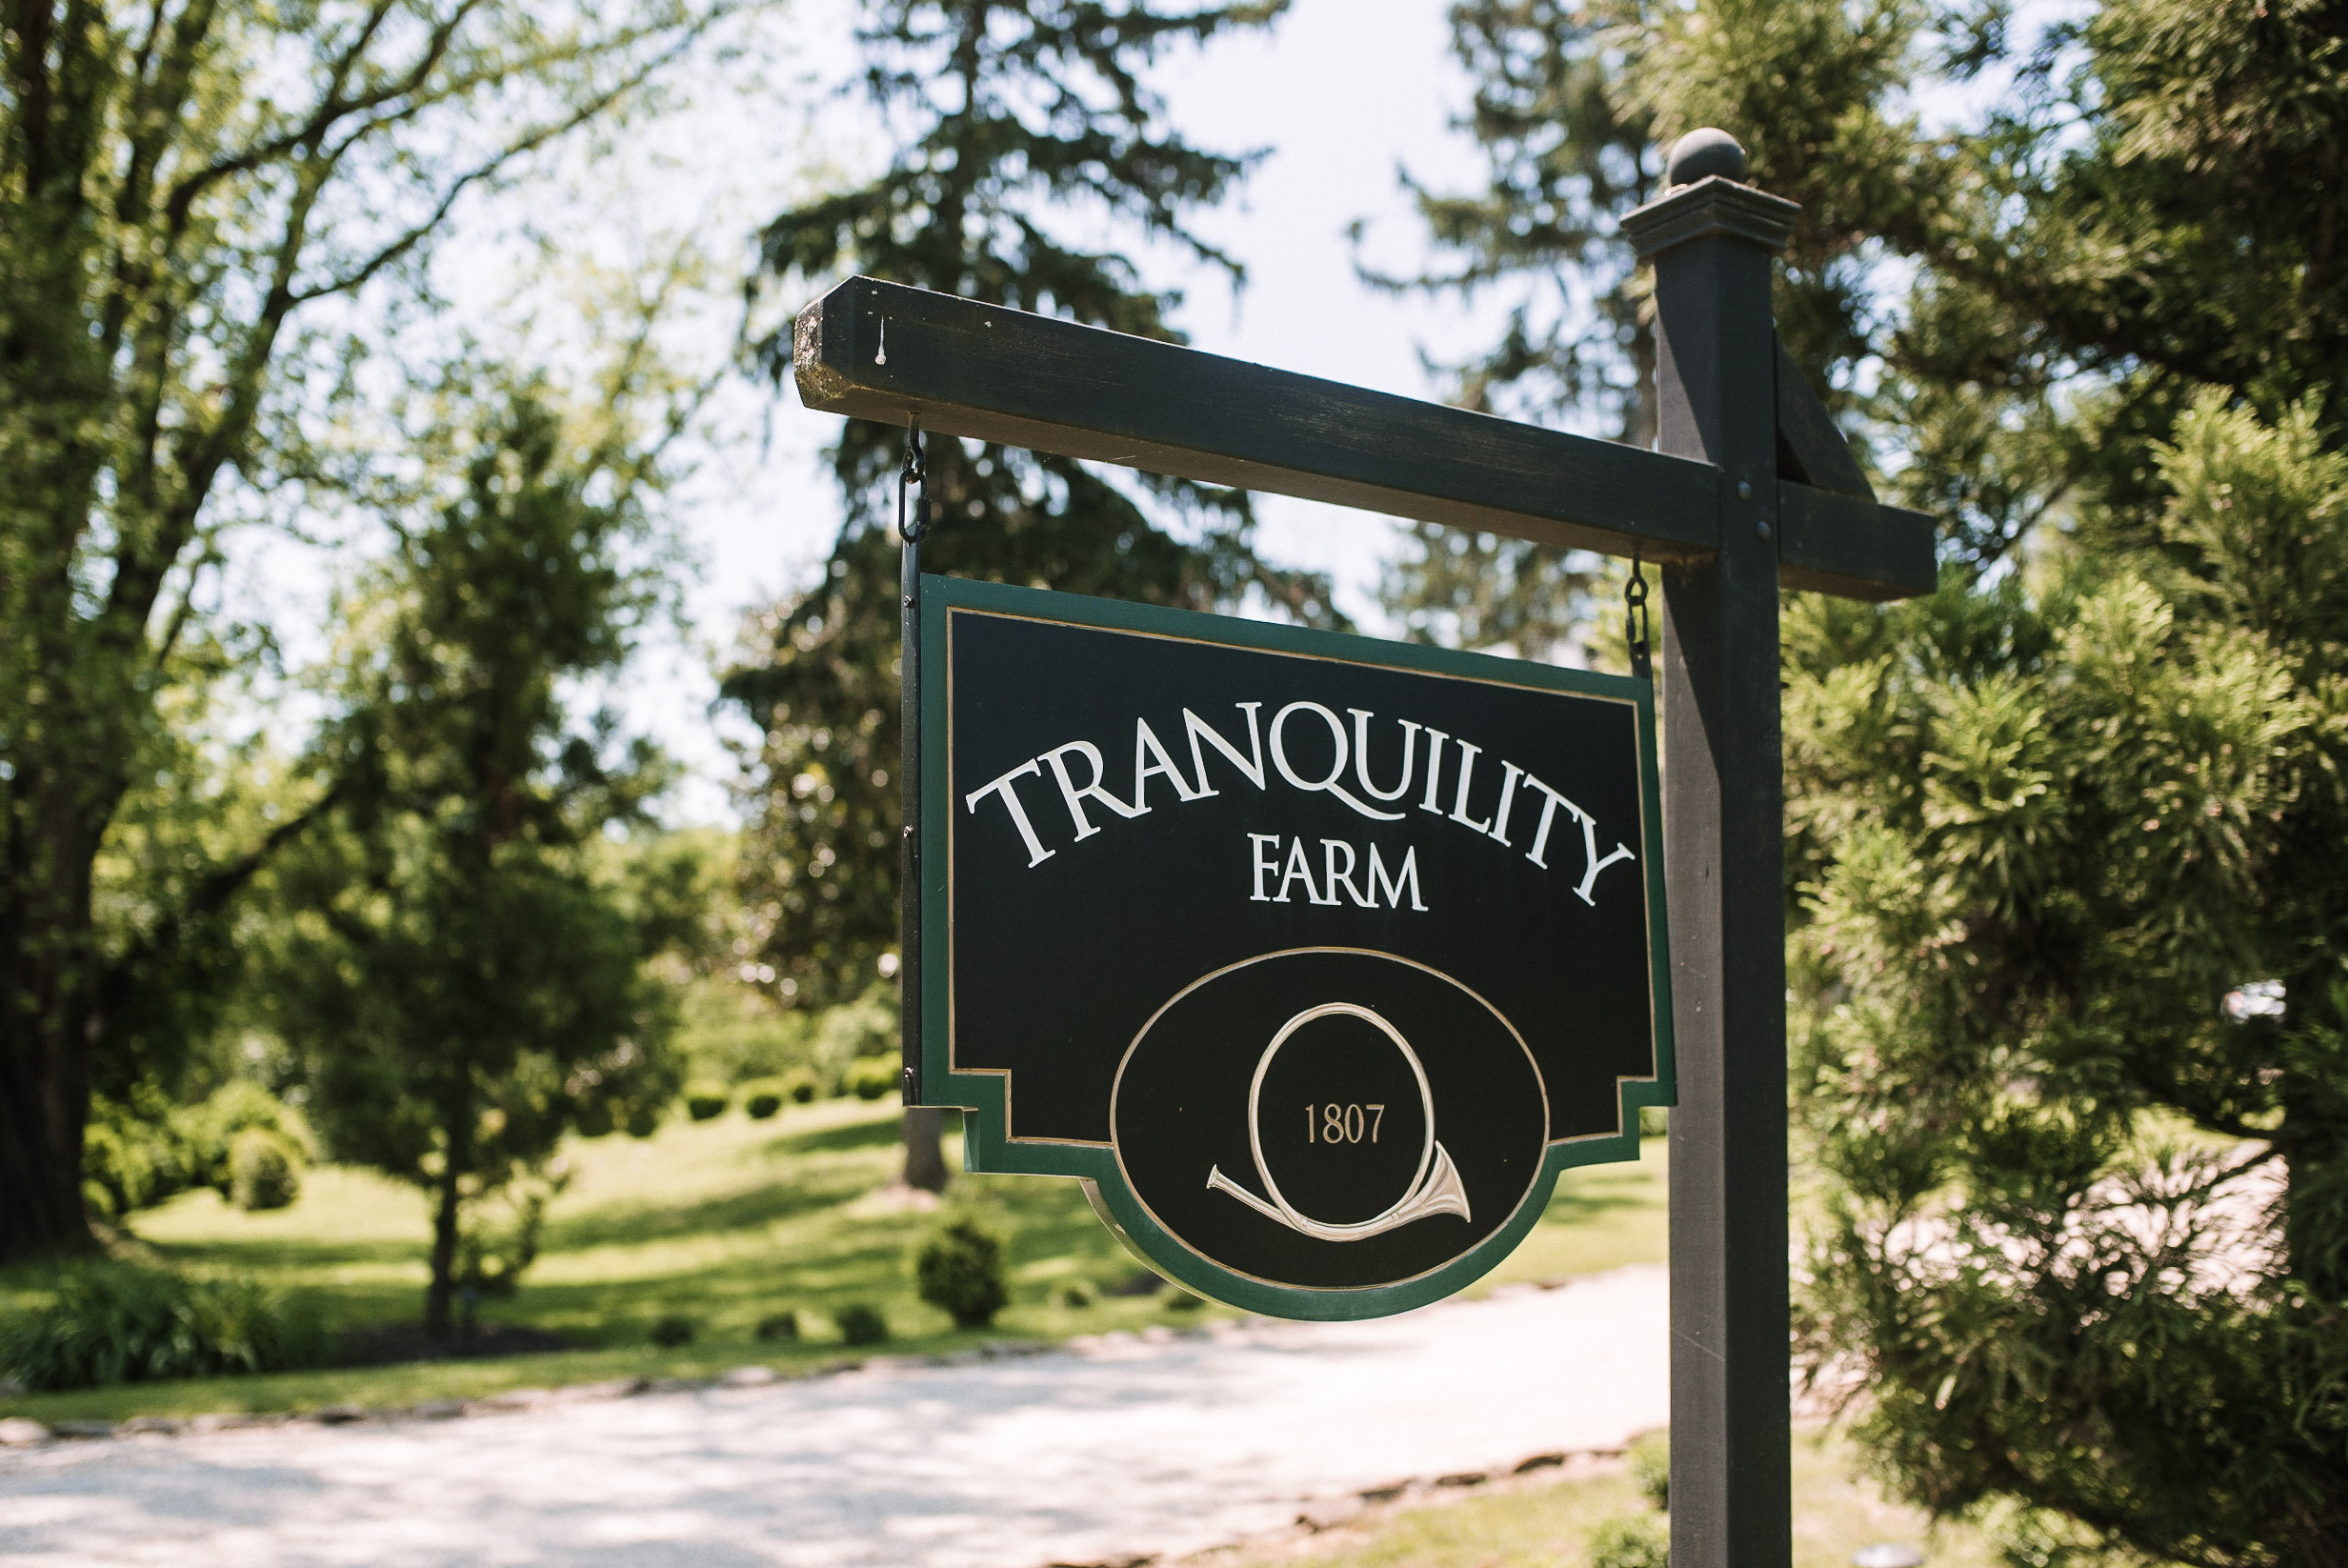 tranquility farm sign at tranquility farm